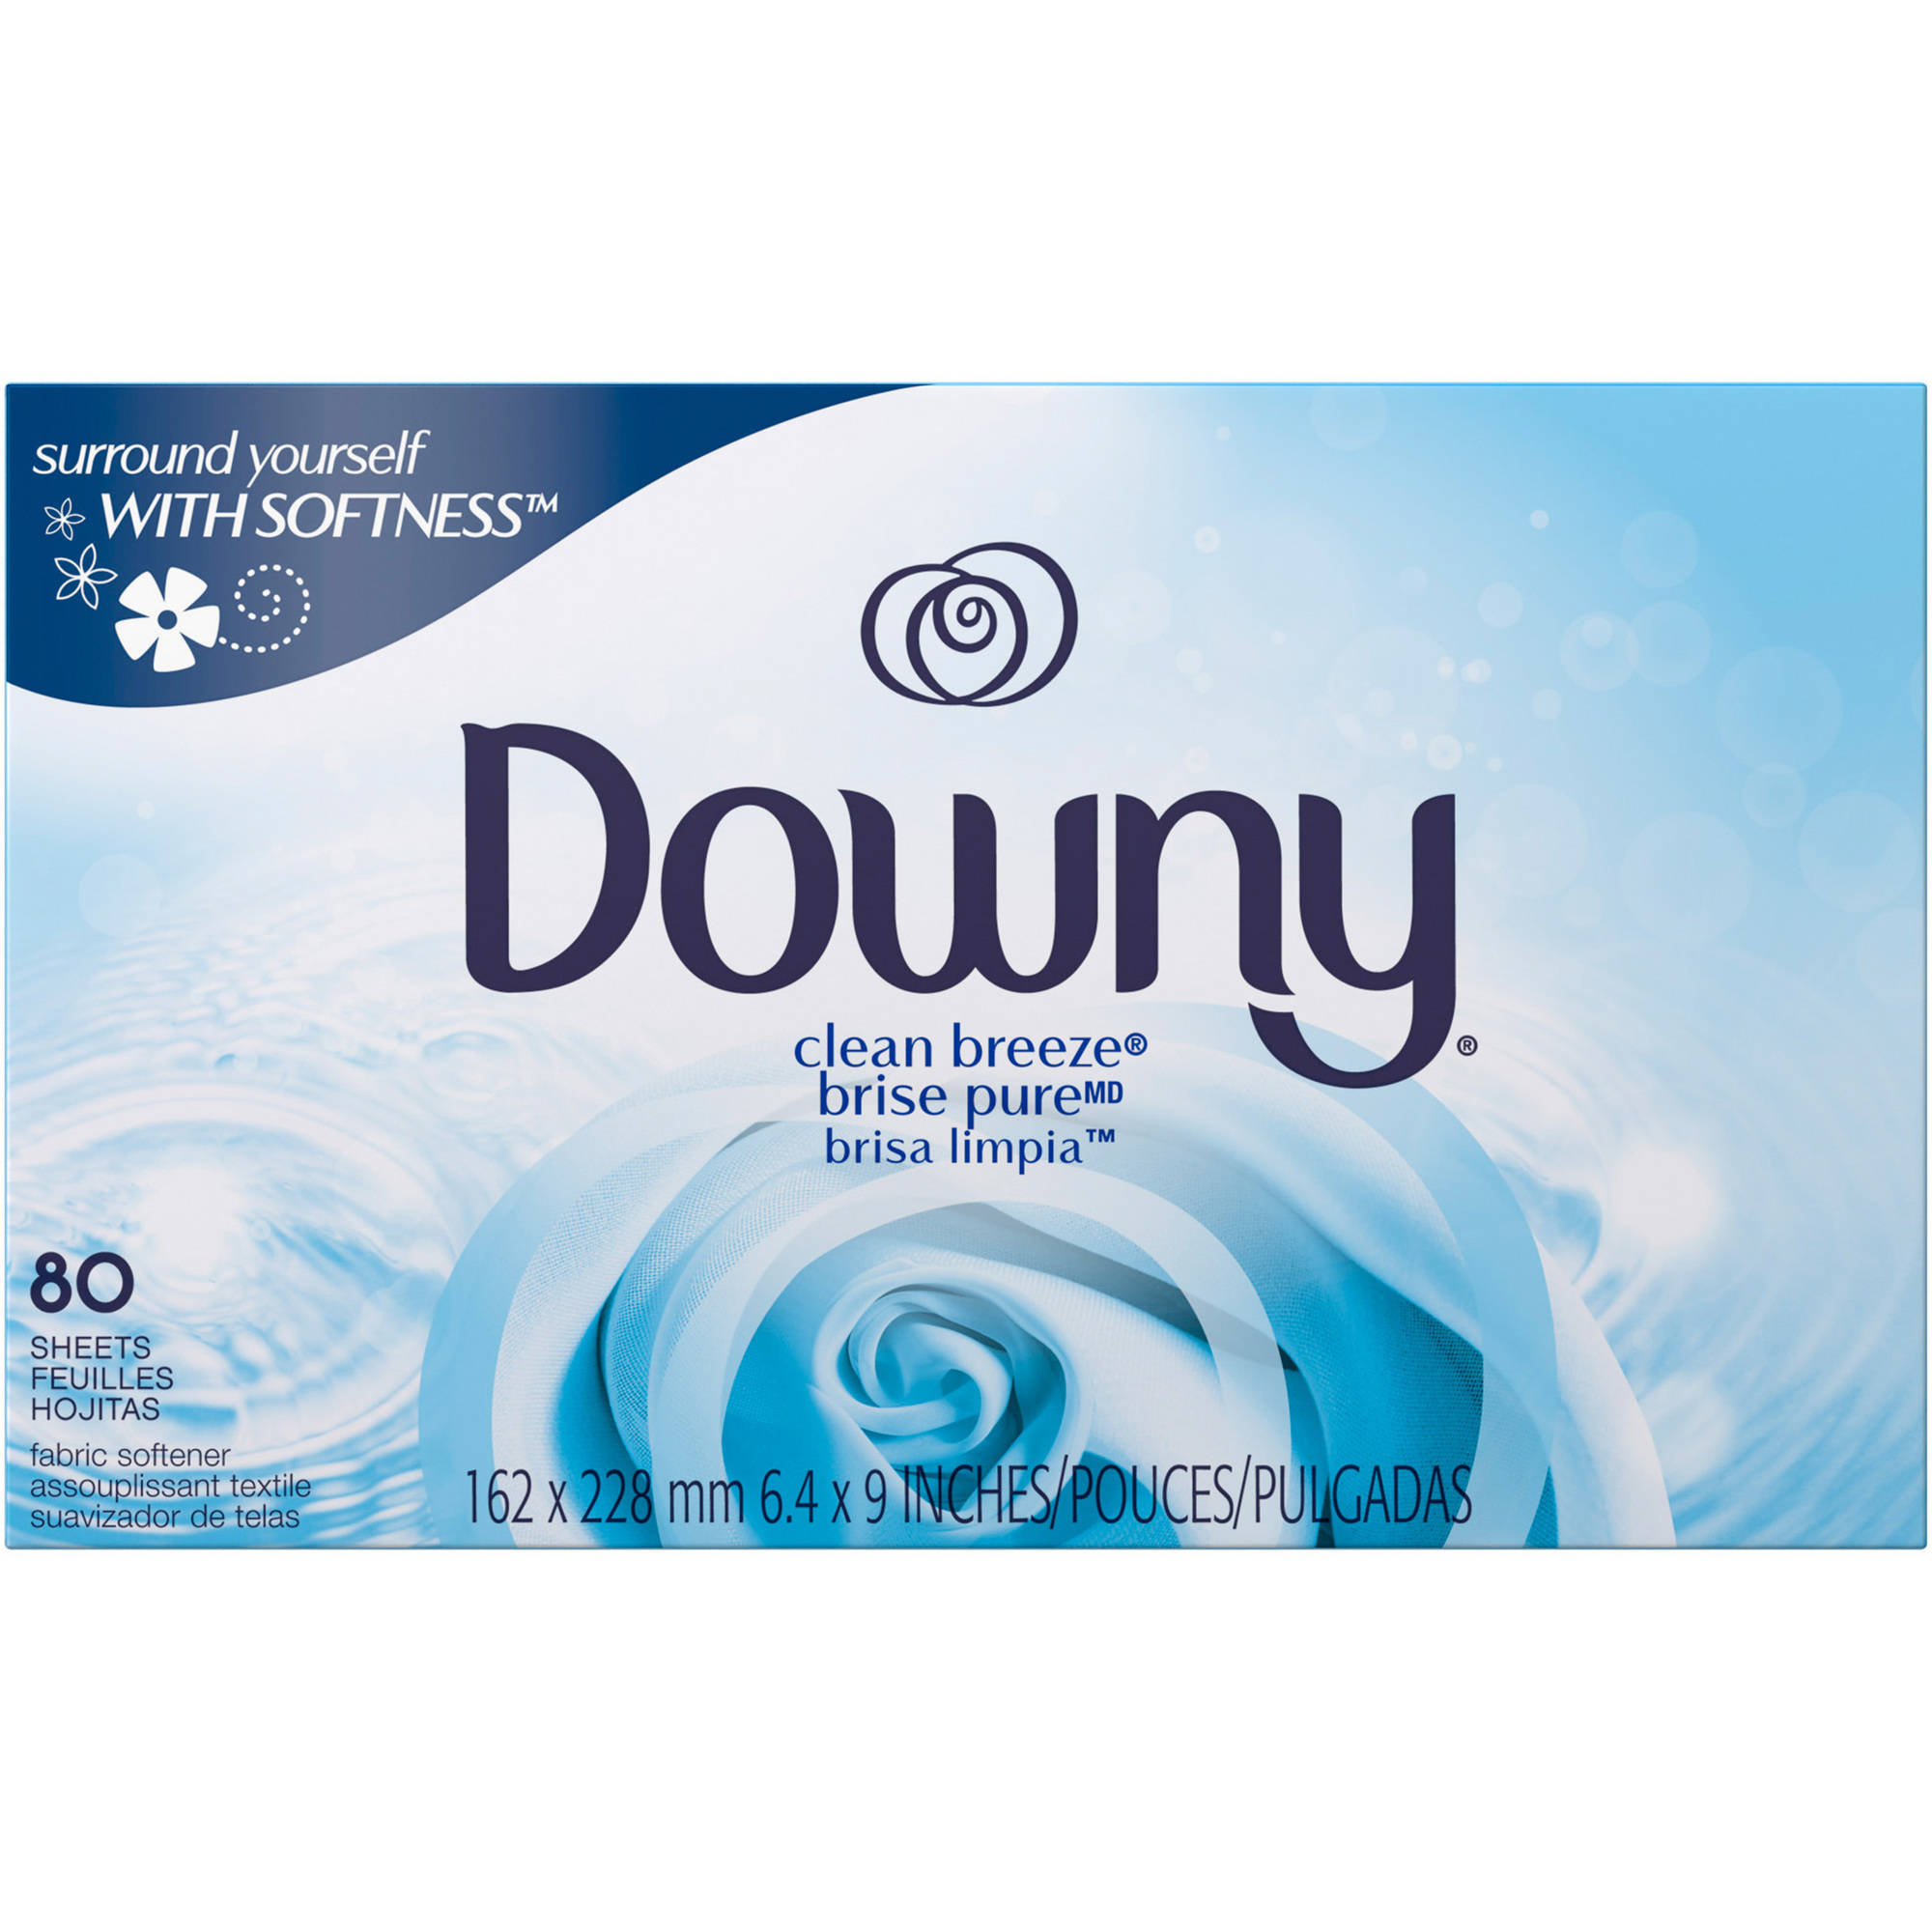 Downy Clean Breeze Fabric Softener Dryer Sheets, 80 sheets